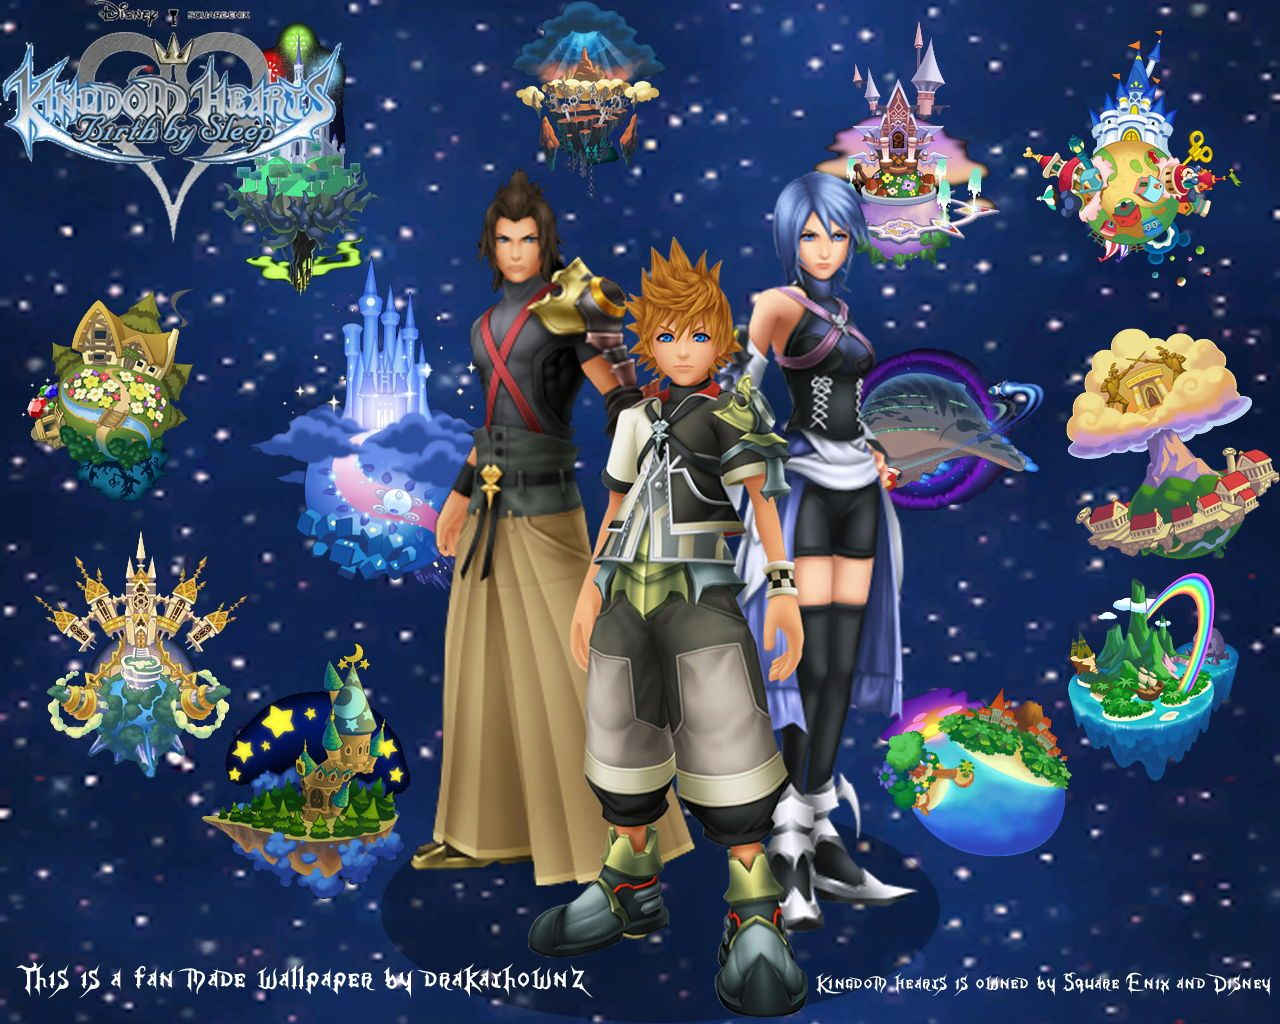 kingdom hearts bbs | Kingdom hearts | Pinterest